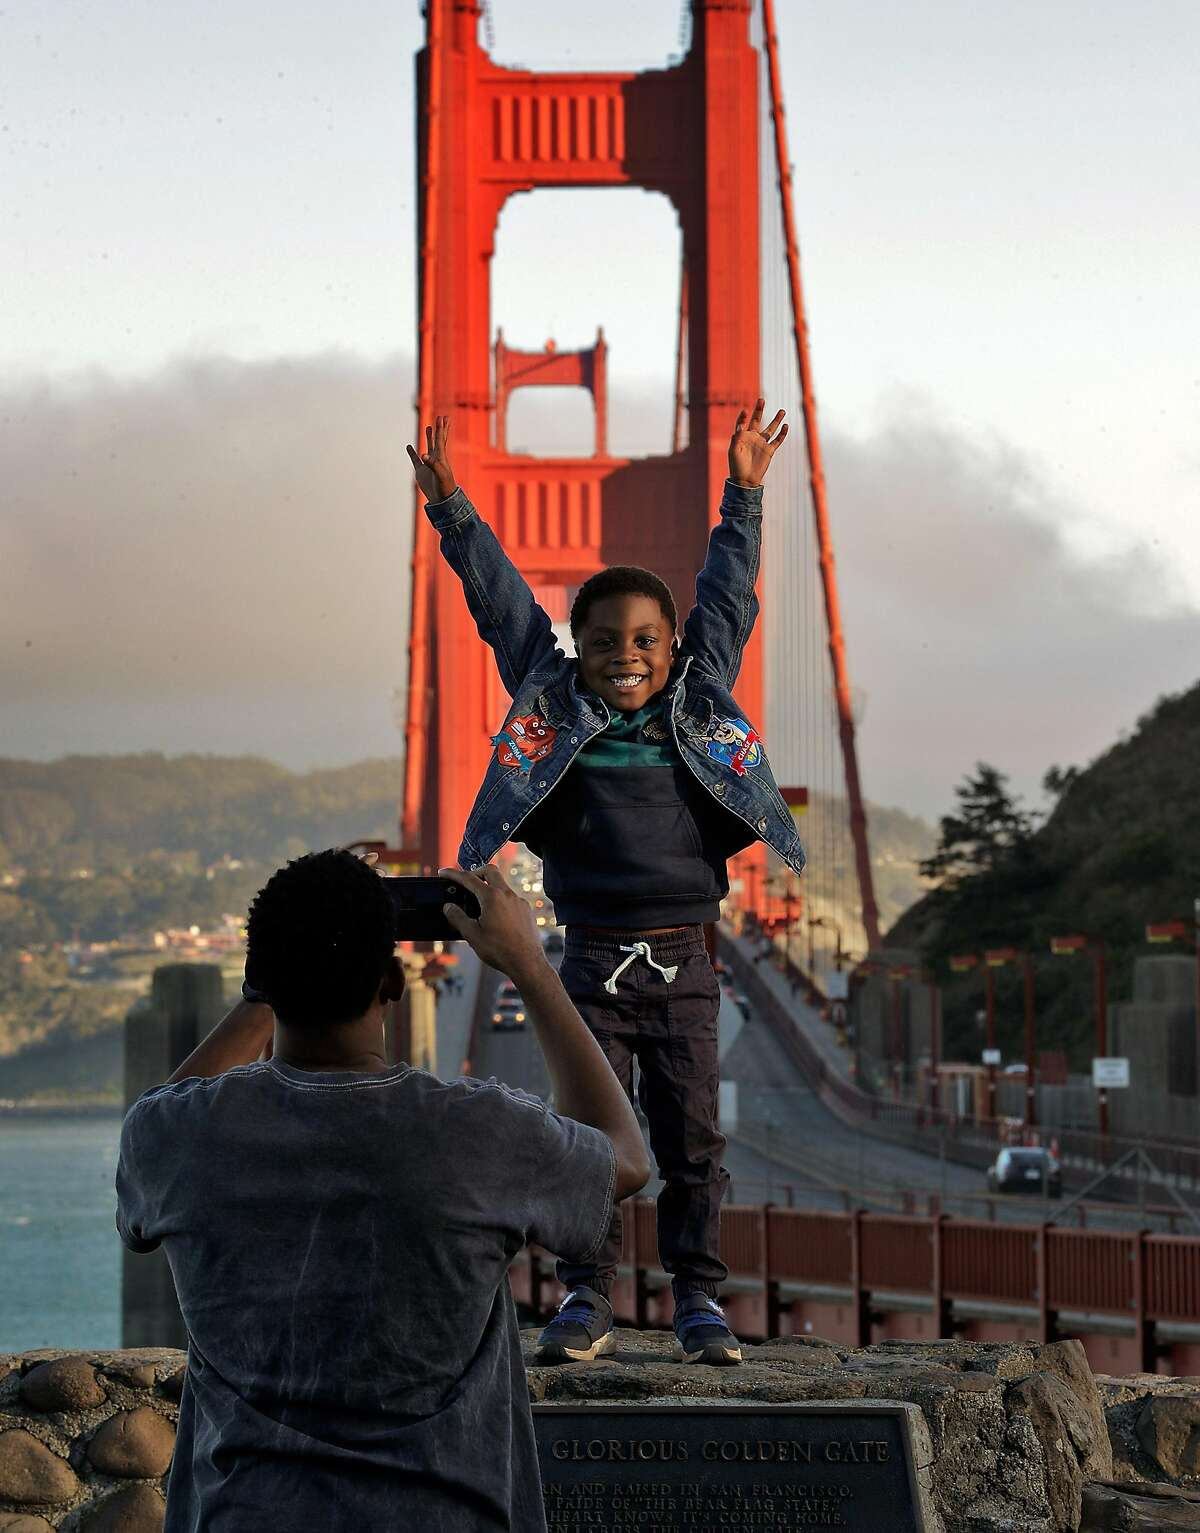 Jeramy Imhoede photographs son Jeramy, 4, in a visit to the Golden Gate Bridge with wife Angelica, all from Minneapolis, at the vista point in Sausalito. Tourism has begun to pick up again in San Francisco in advance of the travel season as the city's reopening has offered people the chance to visit with little fear of coronavirus infection.